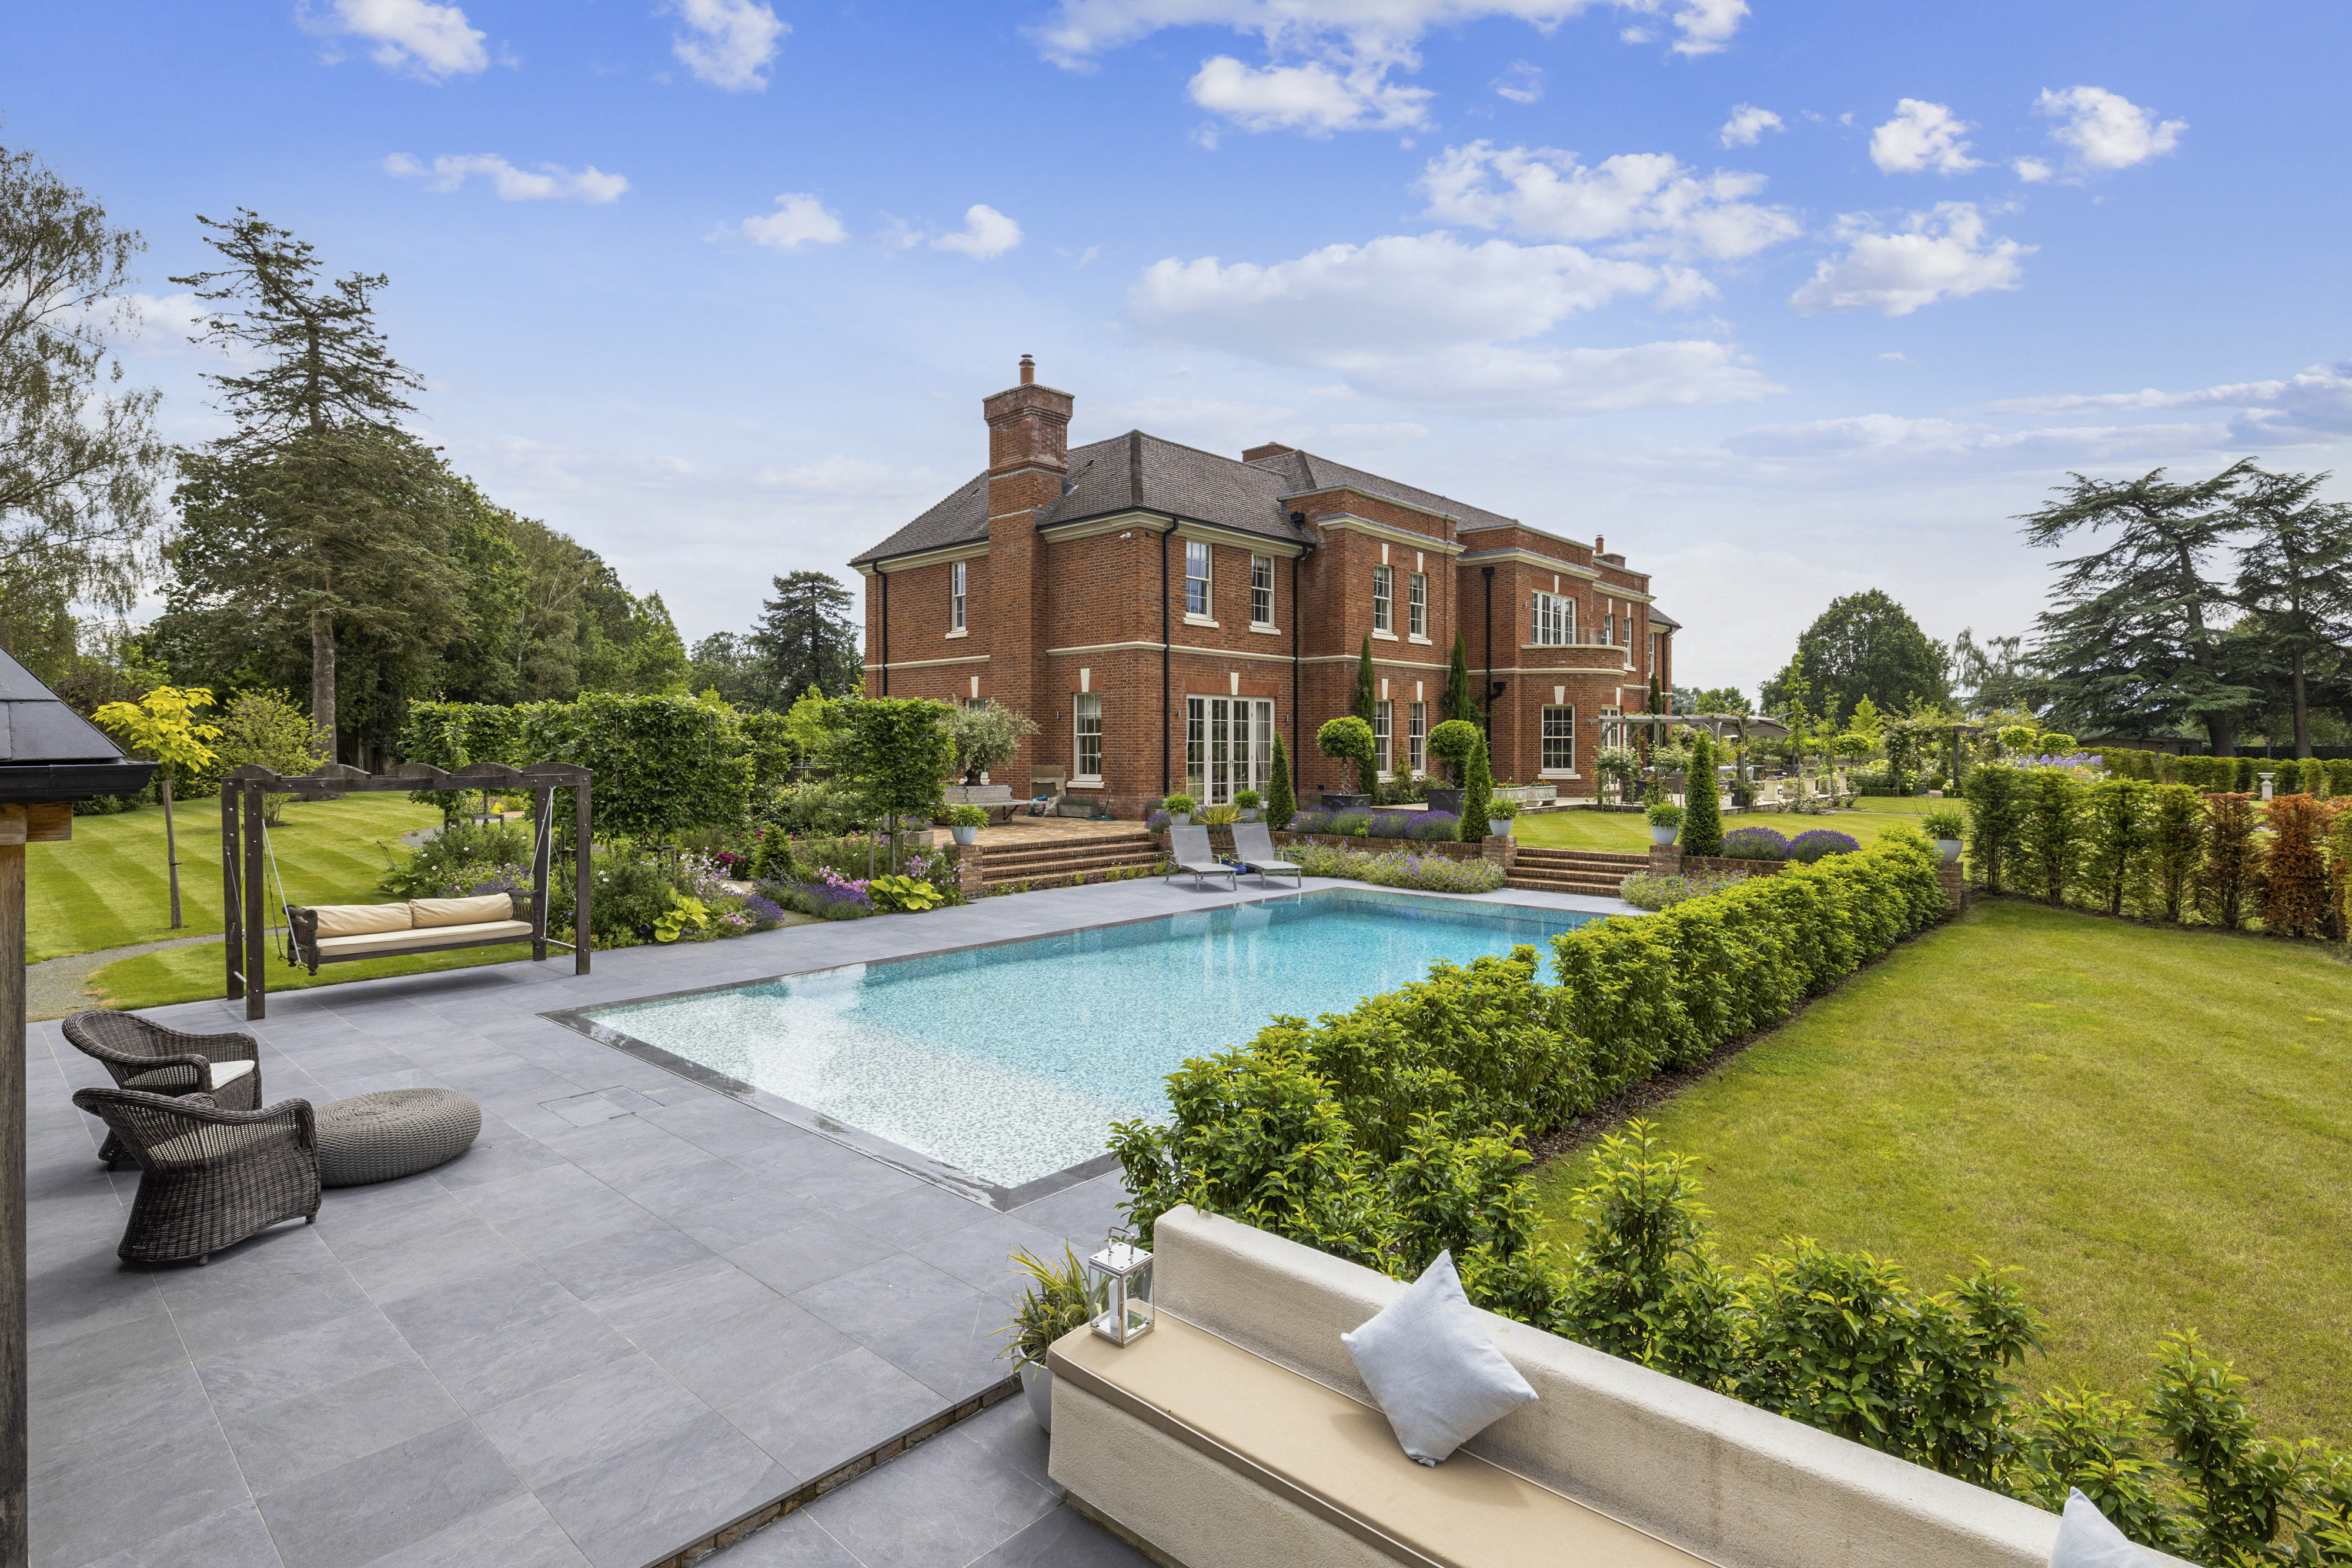 a red brick mansion with outdoor pool and seating area